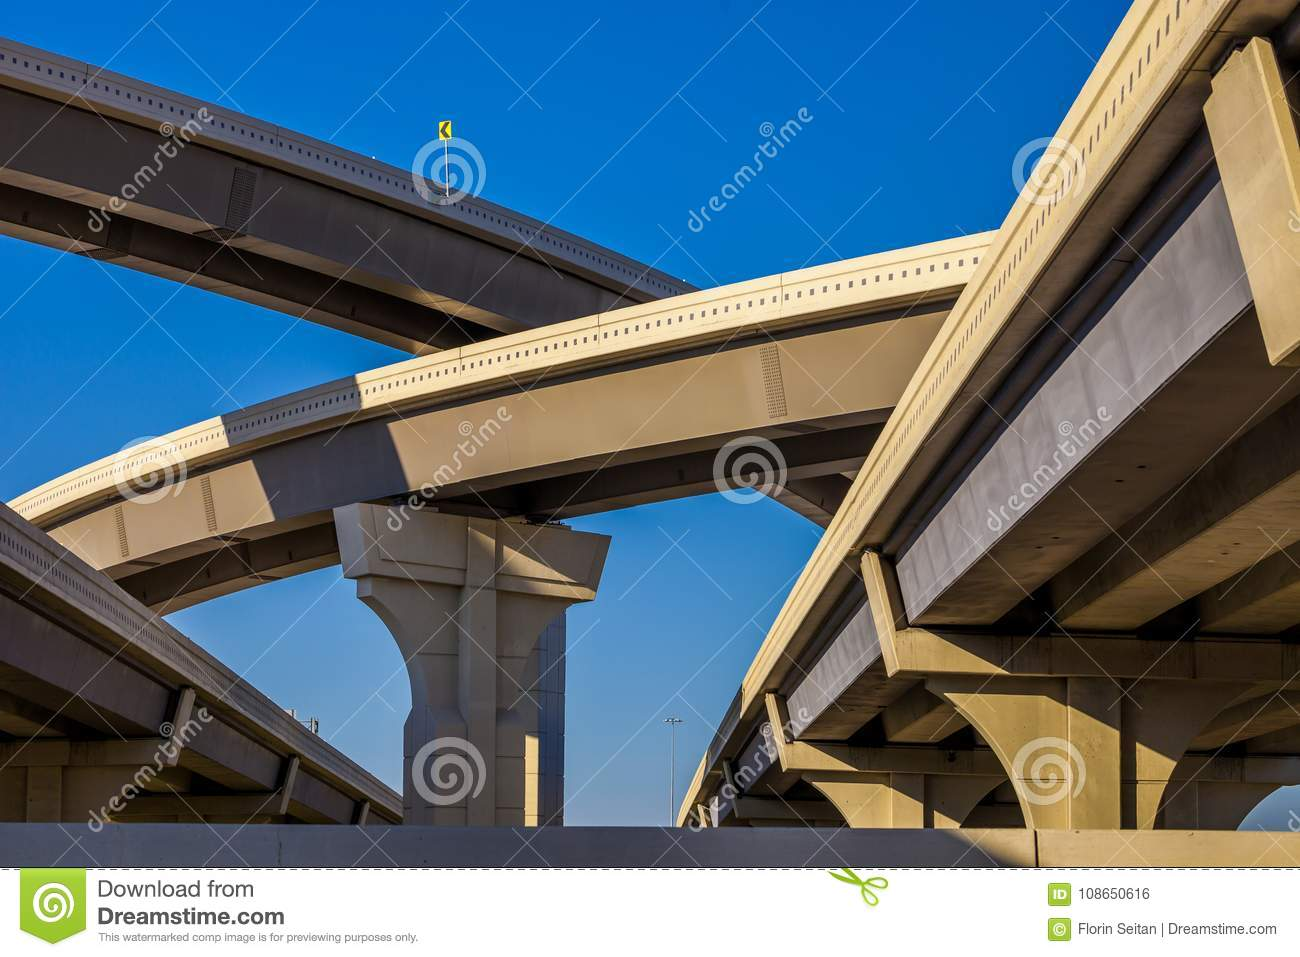 Blue Skies Of Texas >> Section Of Elevated Highway With Several Levels Against A